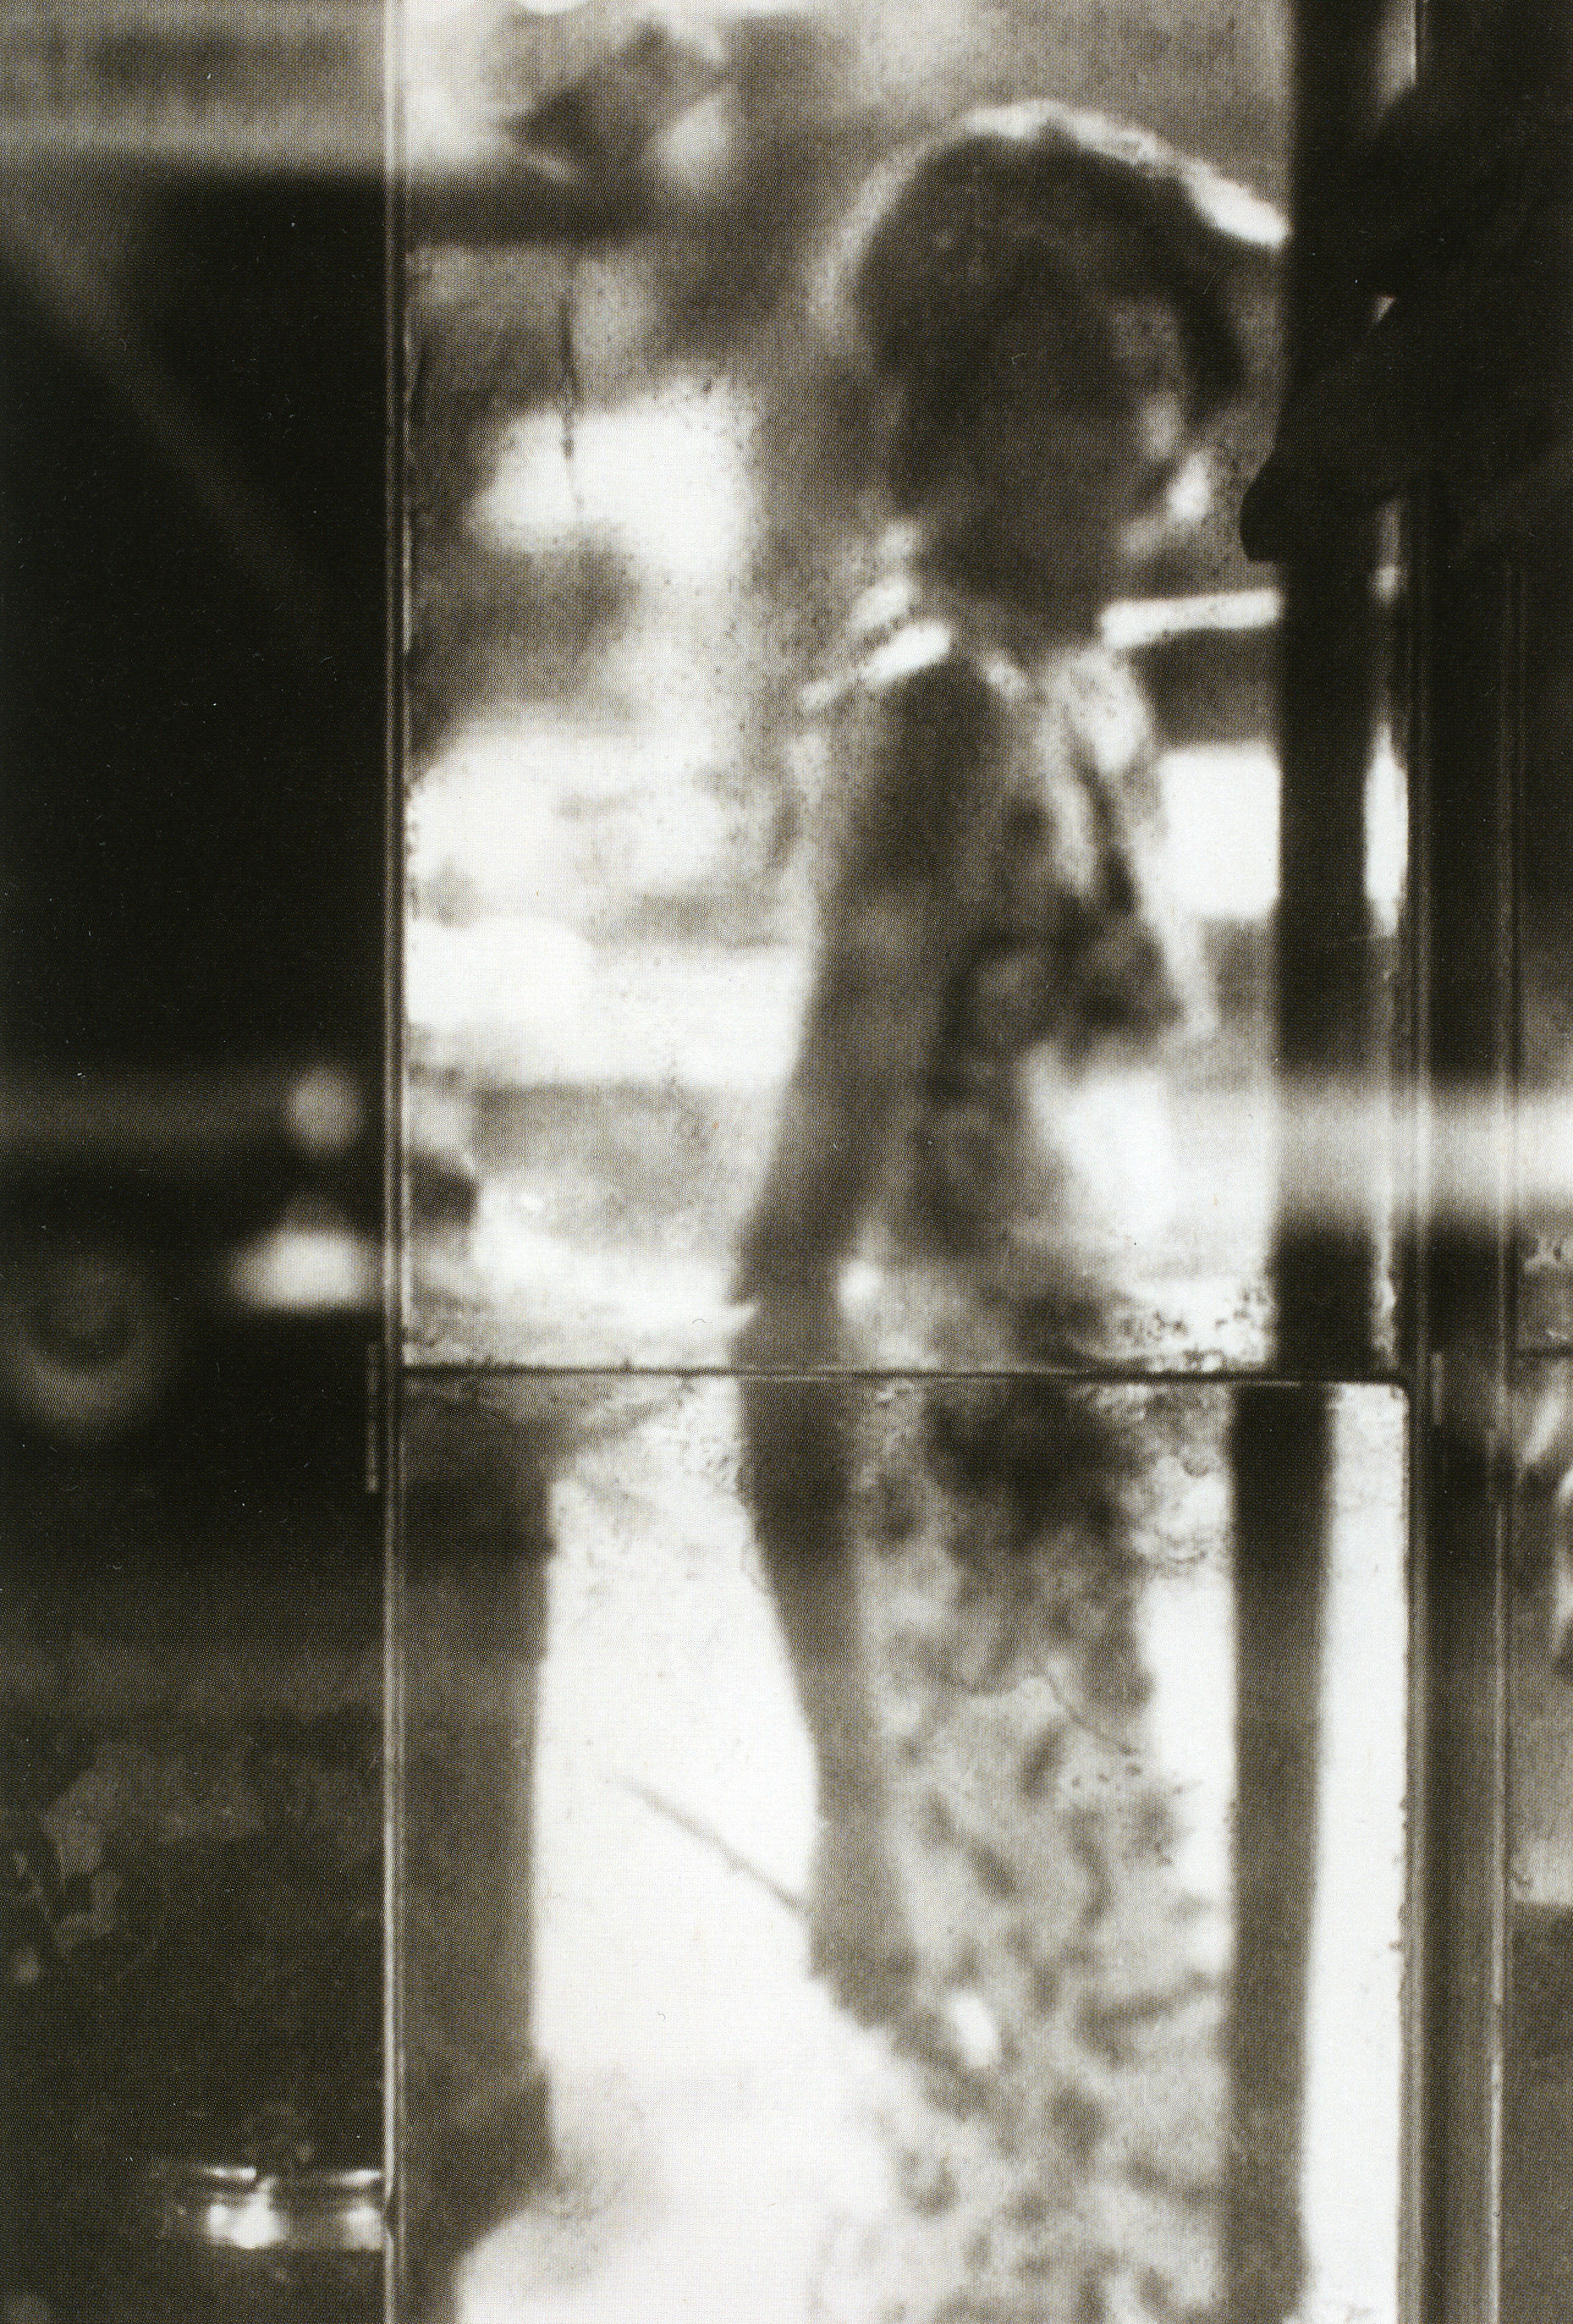 saul leiter_untitled, 1950s_p121